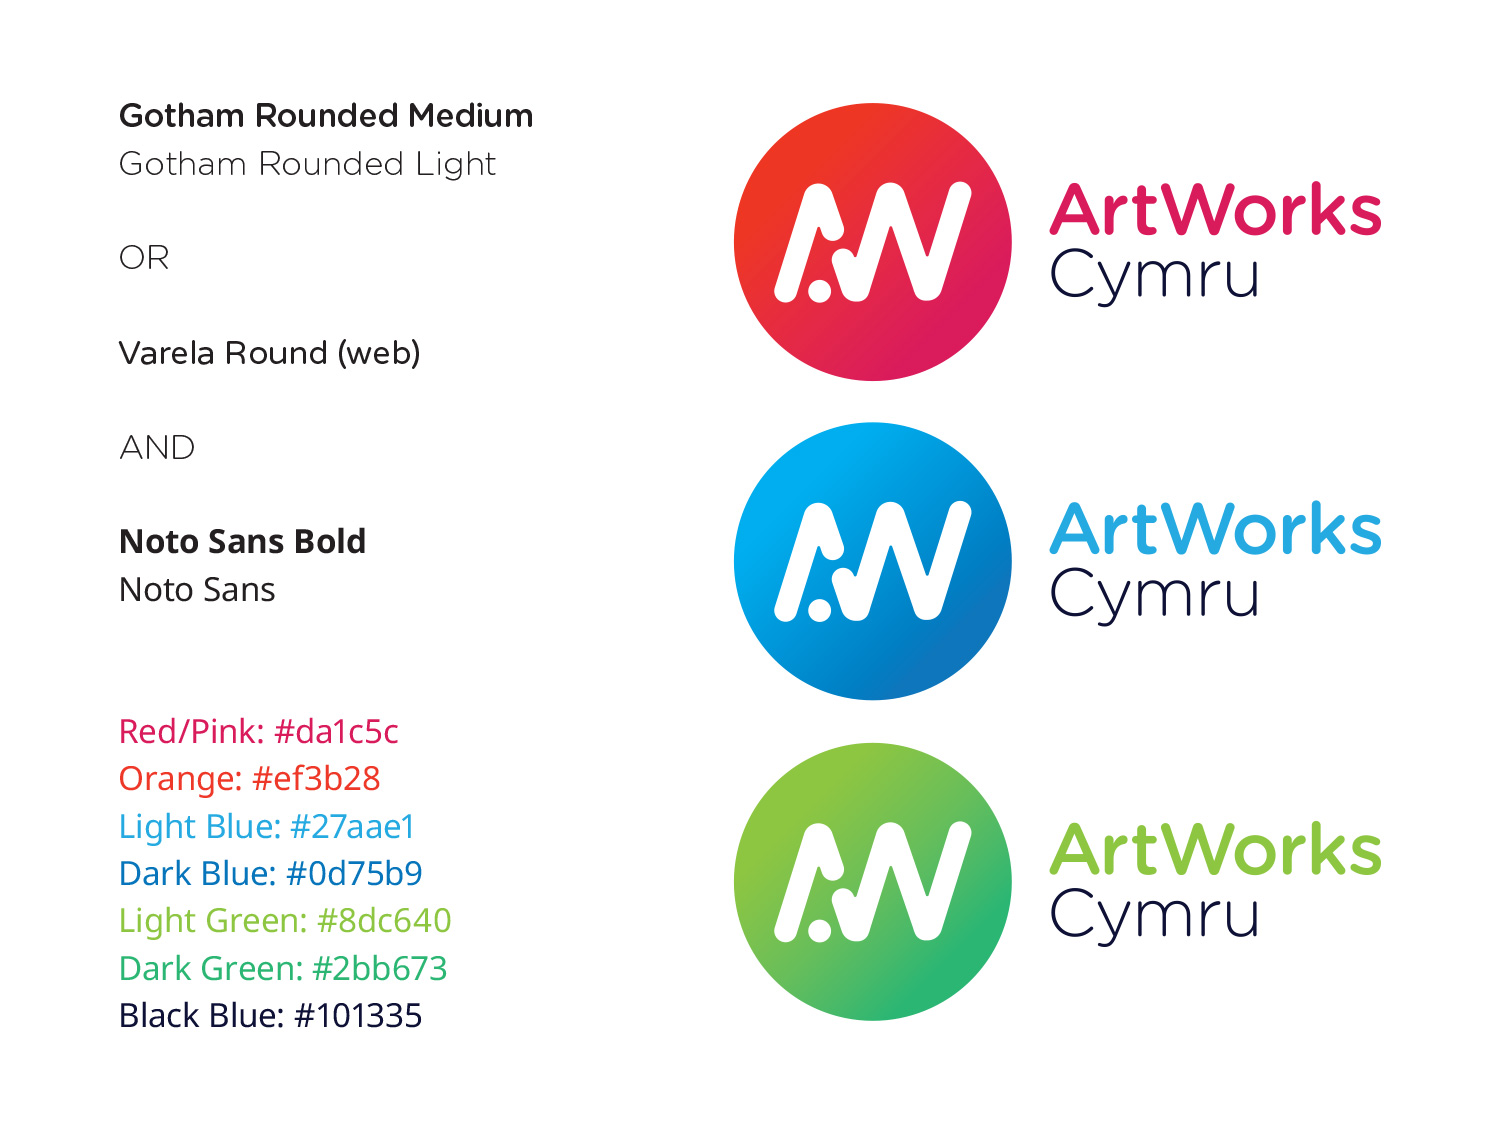 ArtWorks Cymru Logo and Branding Guidelines